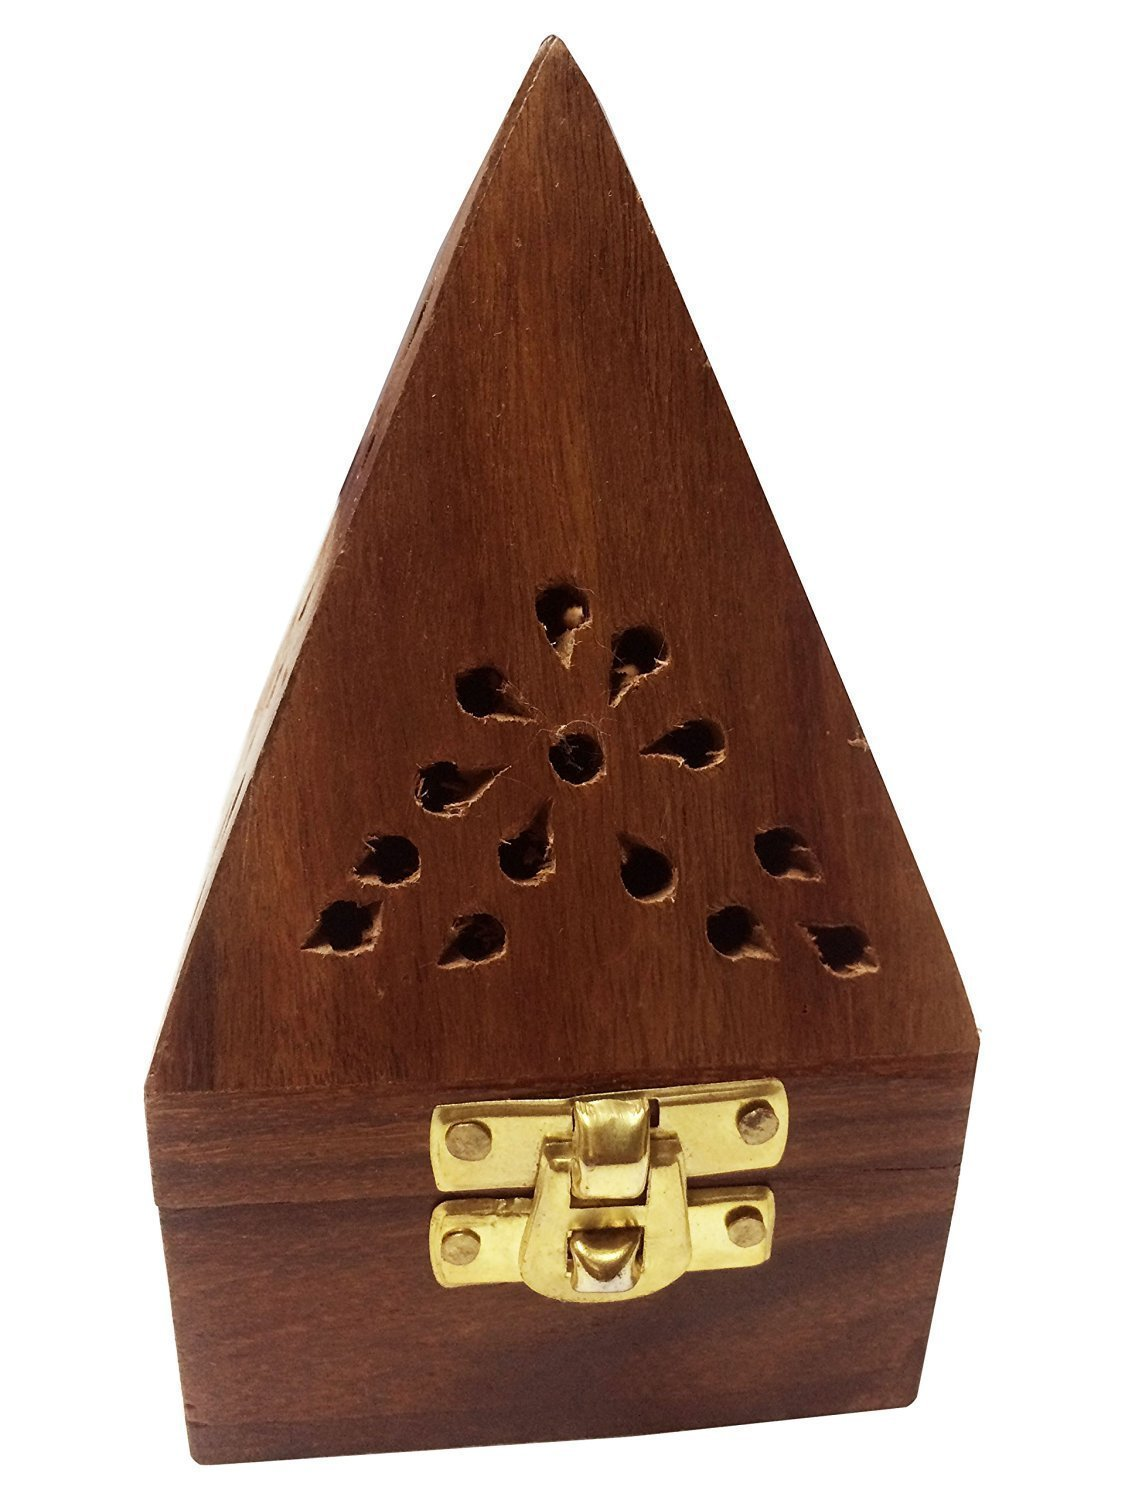 Babli 12 Inch Wooden Incense Tower//Incense Stick Holder//Incense Cone Stand with Intricate Floral Carving Wooden Incense Holder on Big Sale